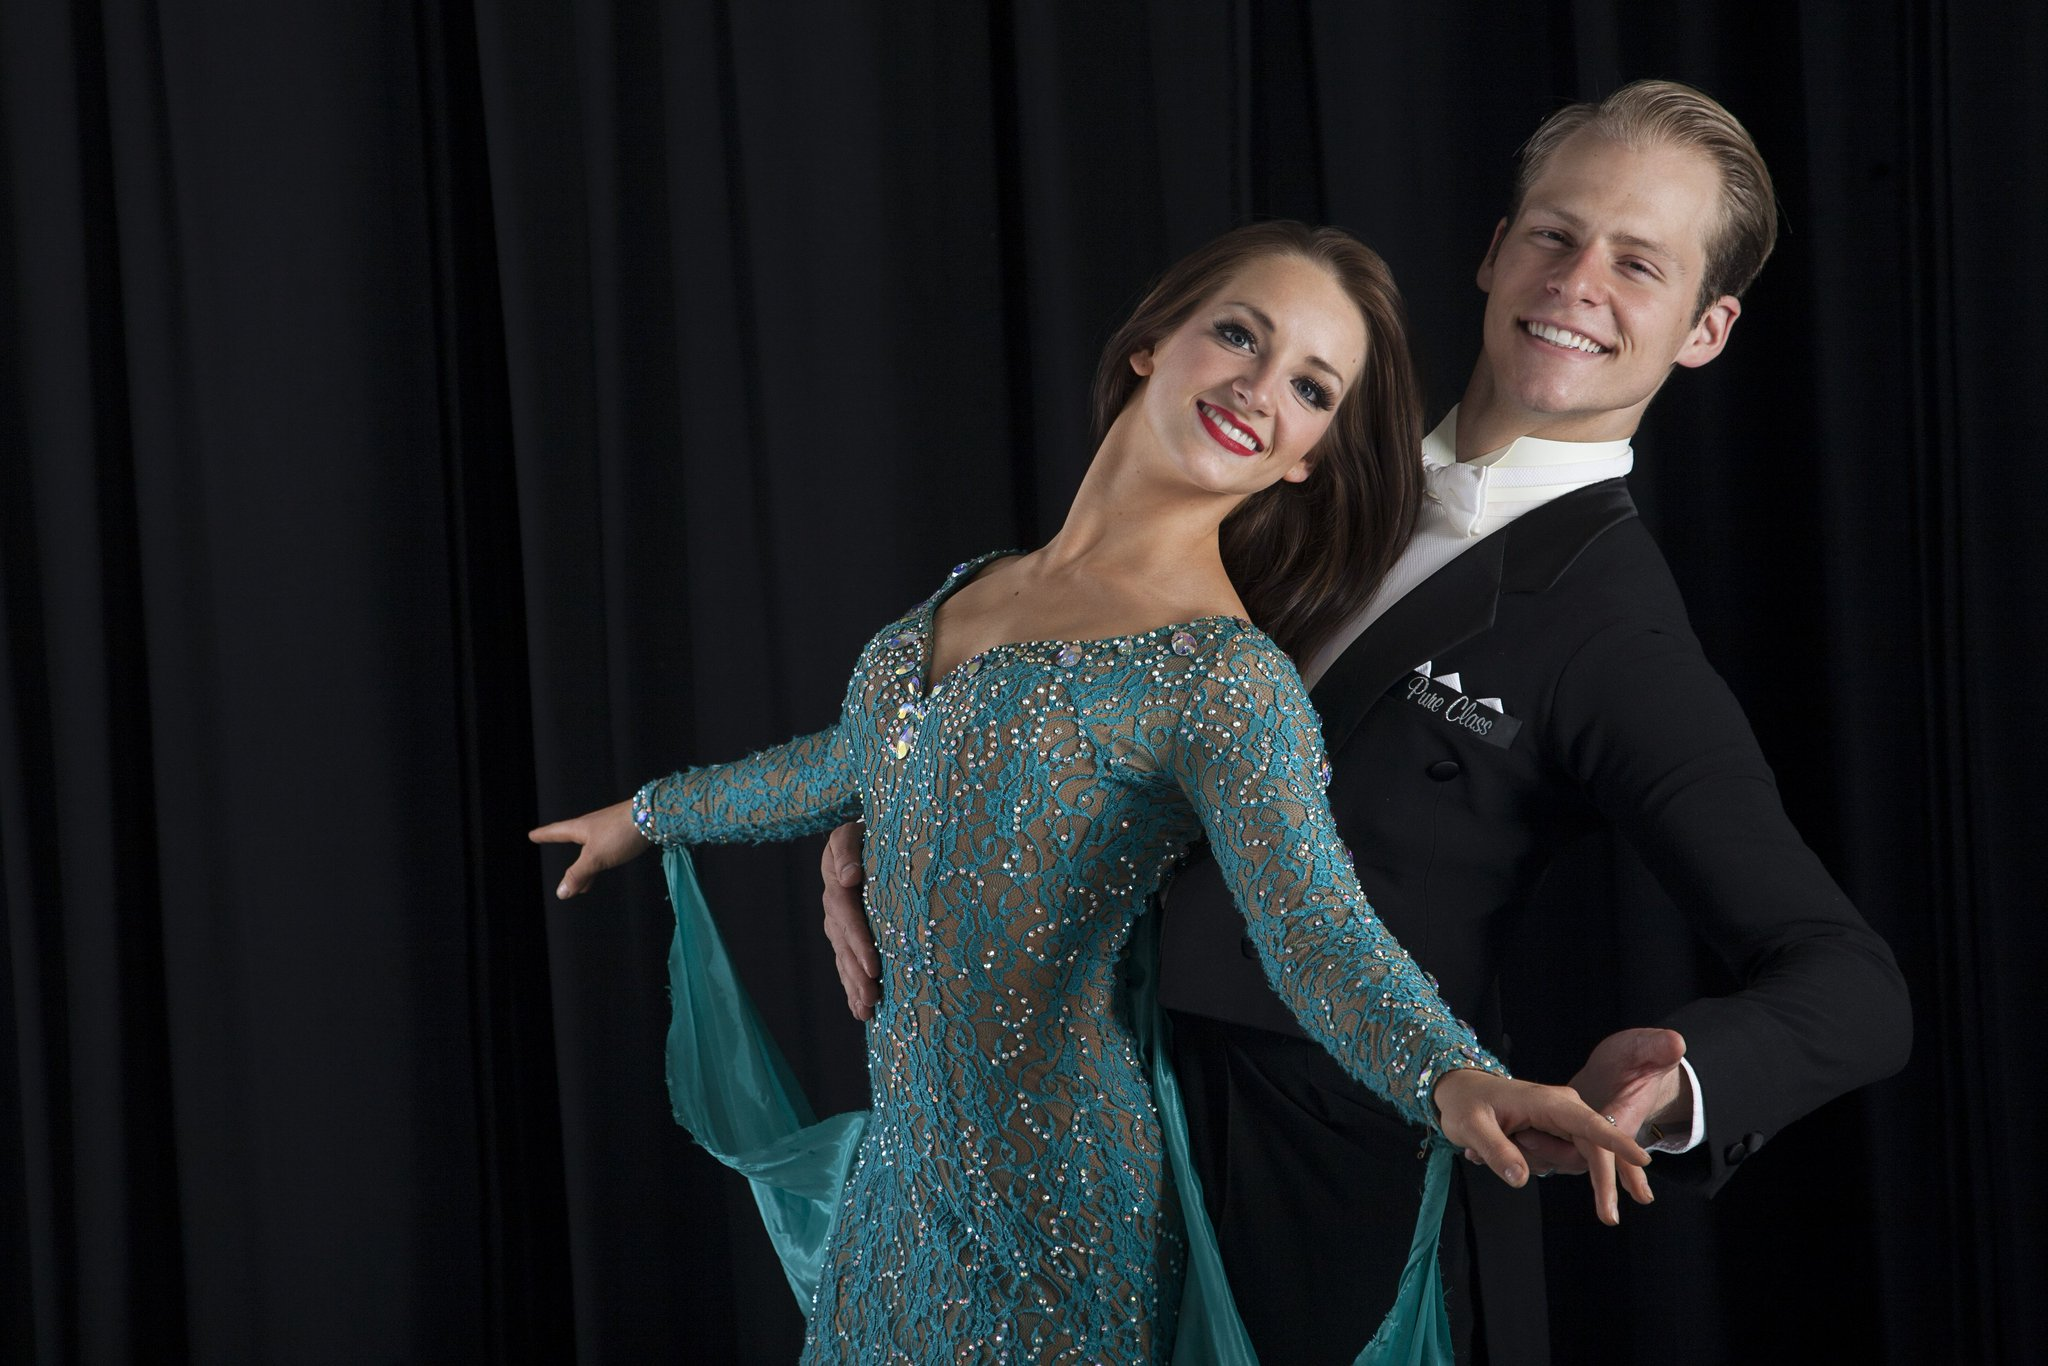 Accomplished journalist and national ballroom champion Kayci Treu will speak at Convocation this Friday! #CFACGrad https://t.co/diKQDG3BMy https://t.co/QO98CfFg07